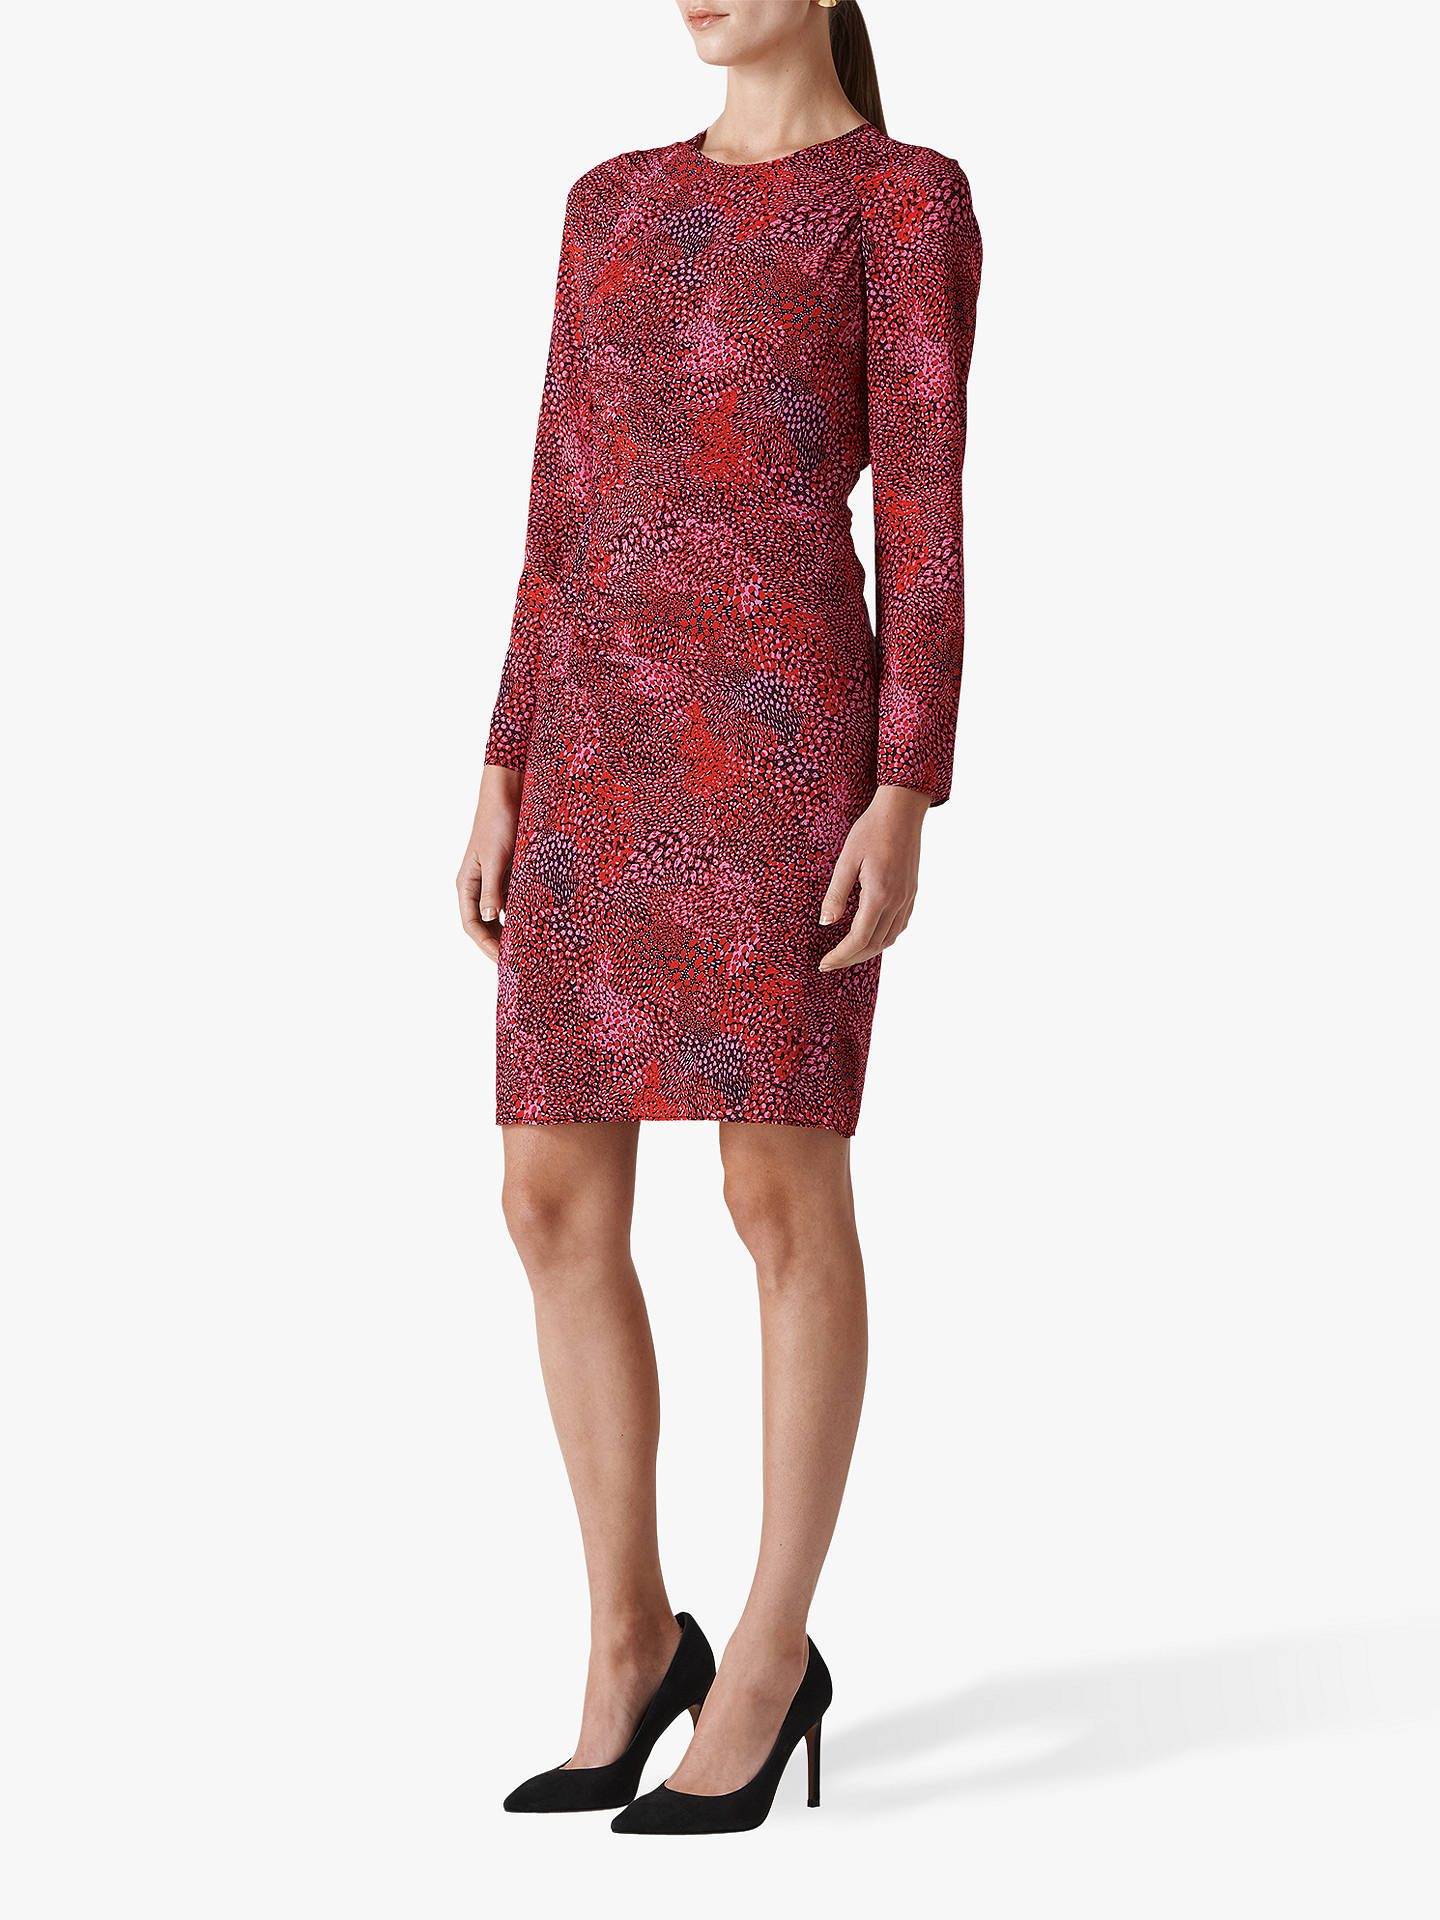 BuyWhistles Abstract Animal Silk Blend Bodycon Dress 8956a4468d88